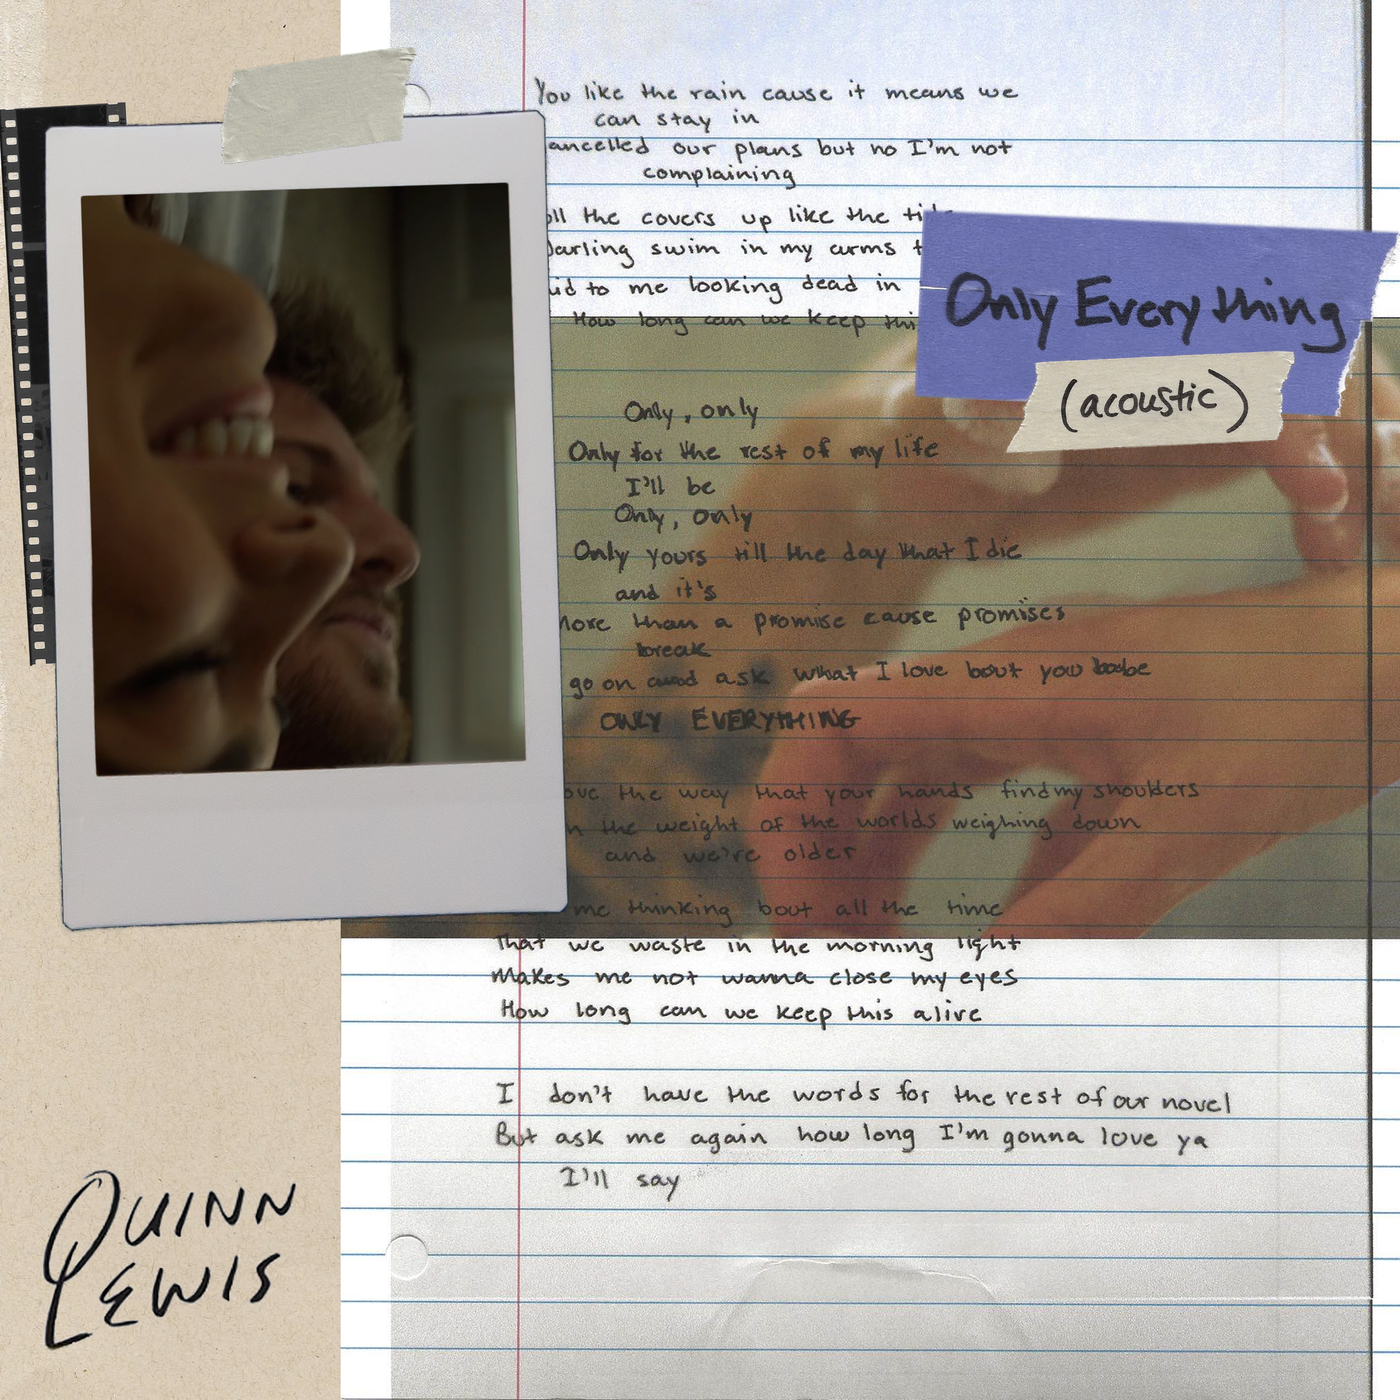 Only Everything (Acoustic) - Quinn Lewis